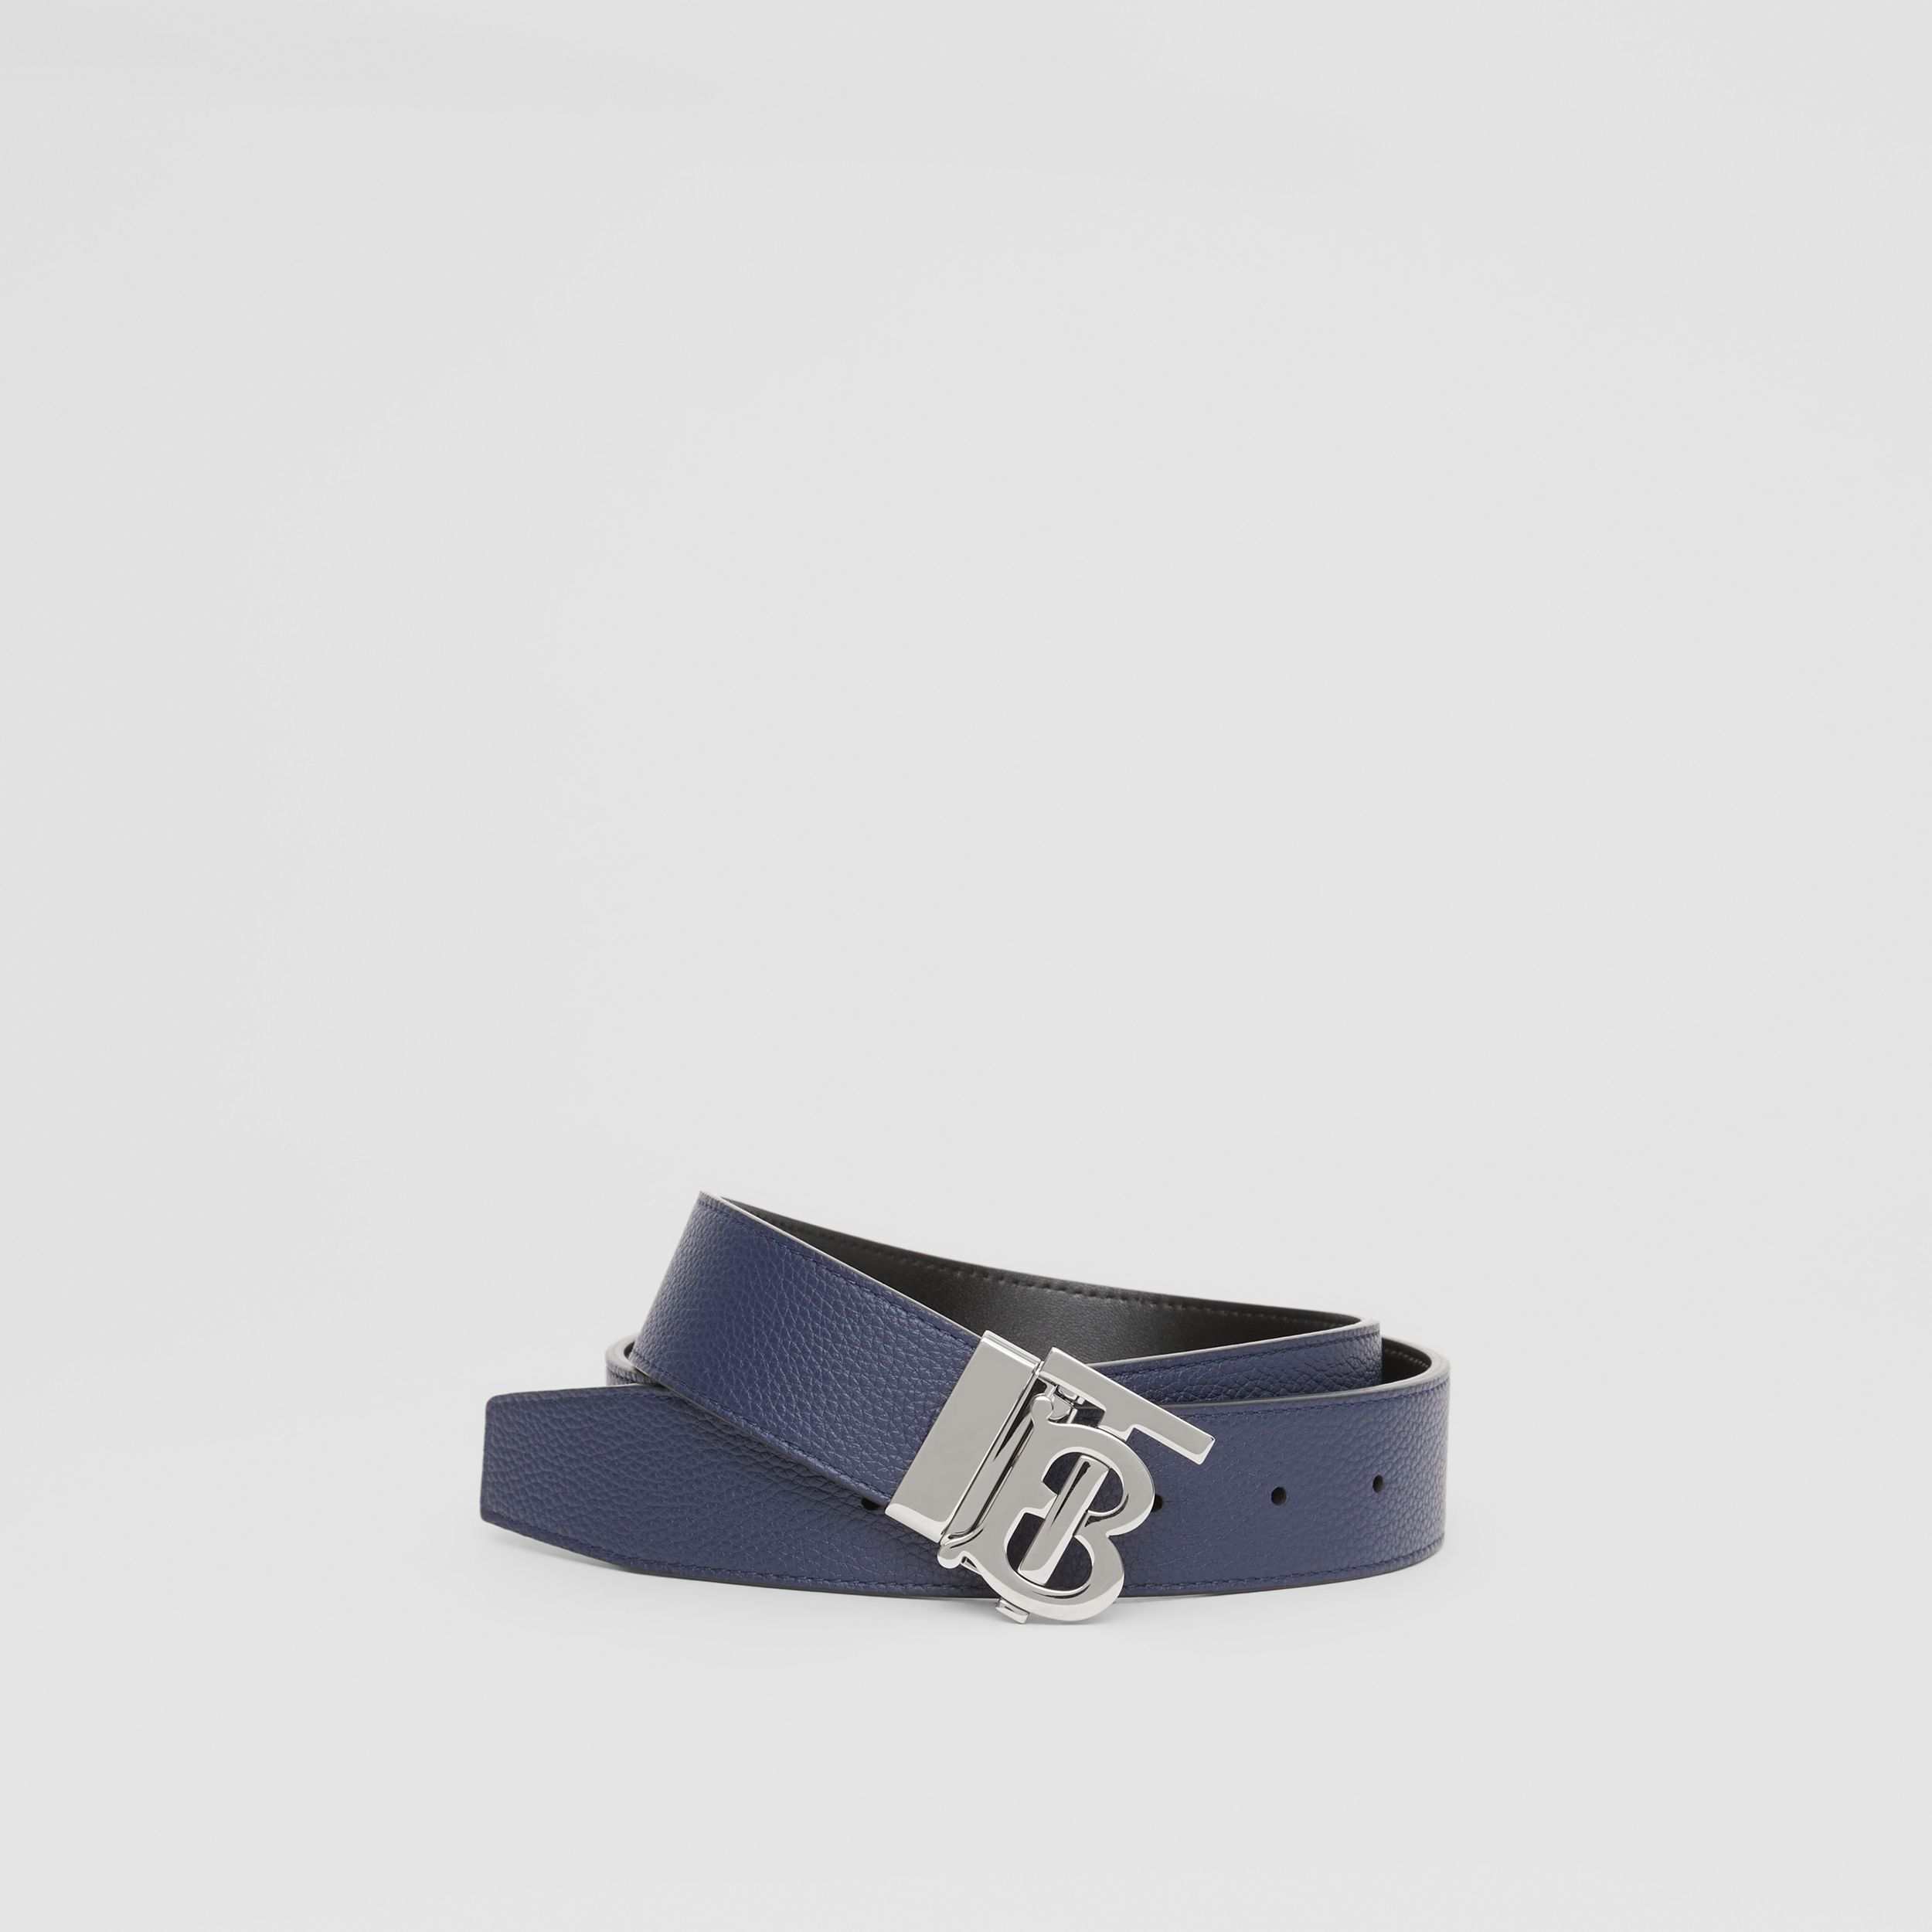 Reversible Monogram Motif Leather Belt in Navy/black - Men | Burberry - 1